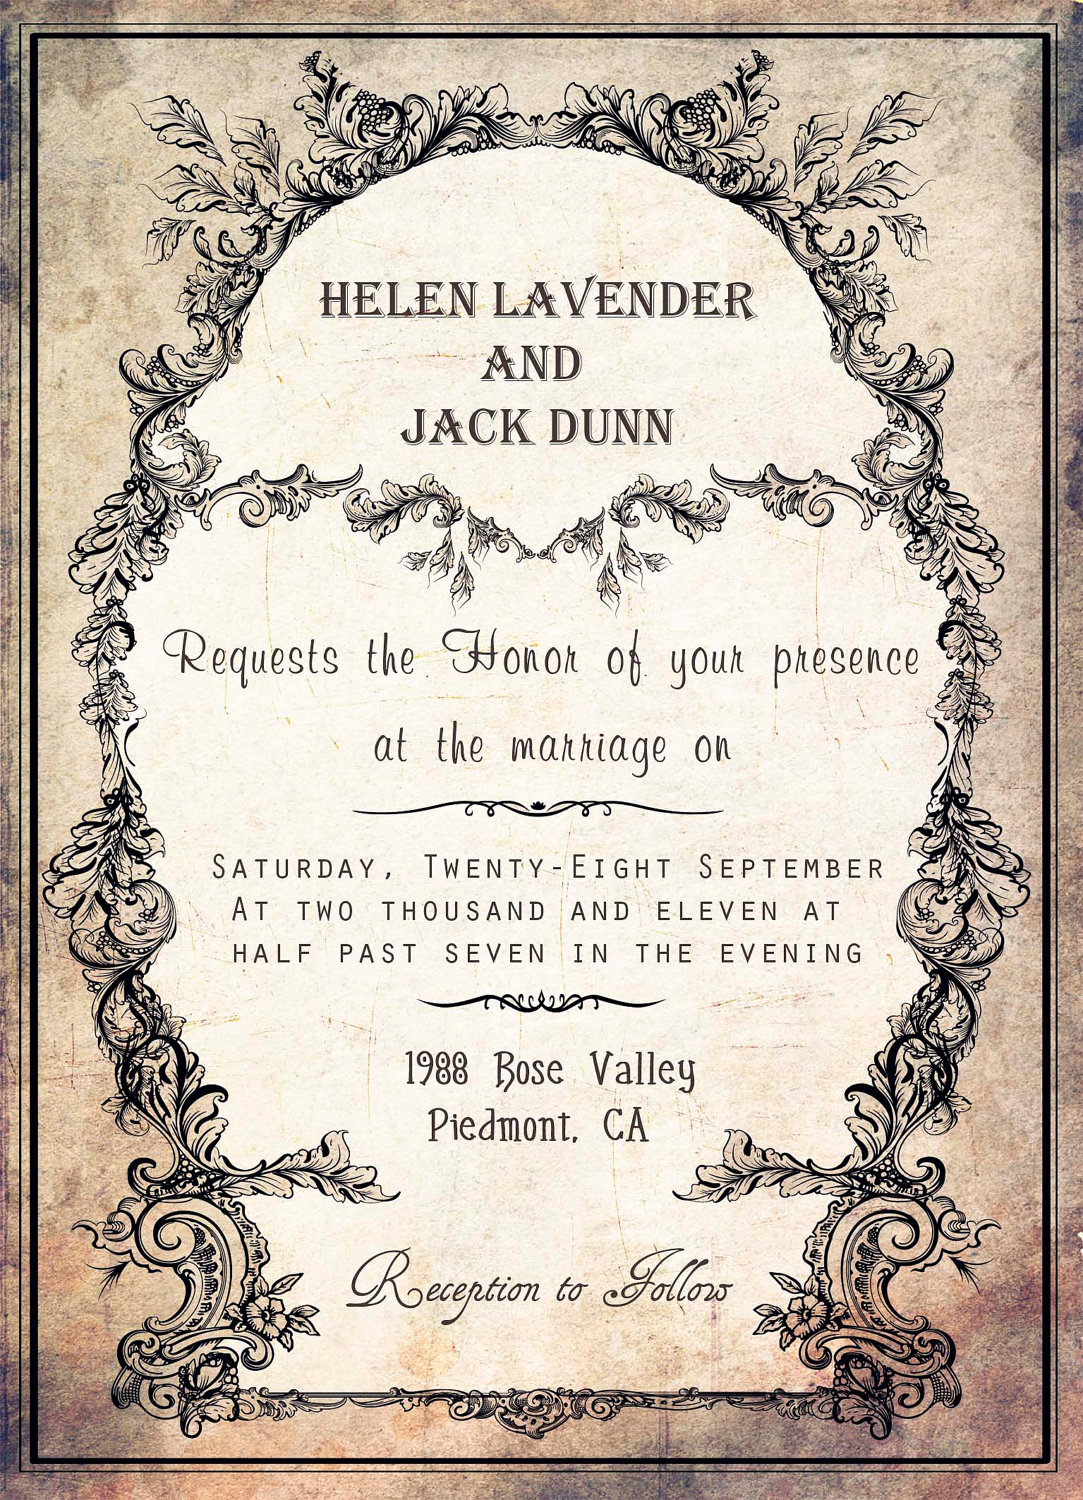 Wedding Invitation Template Peellandfmtk - Wedding invitation templates: wedding invitation downloadable templates